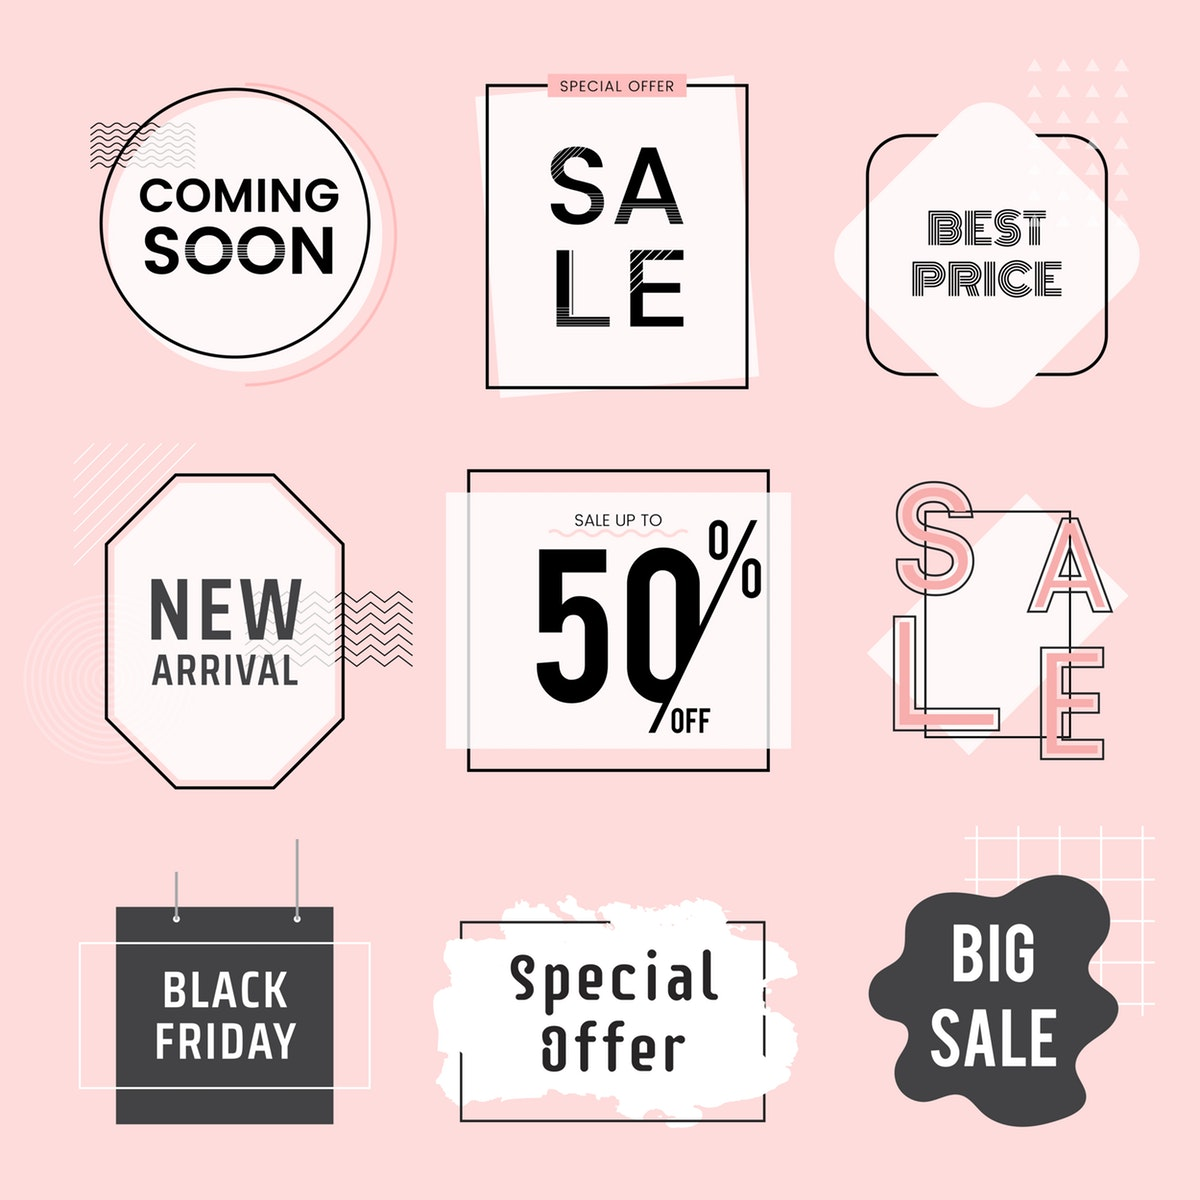 black-friday-sales